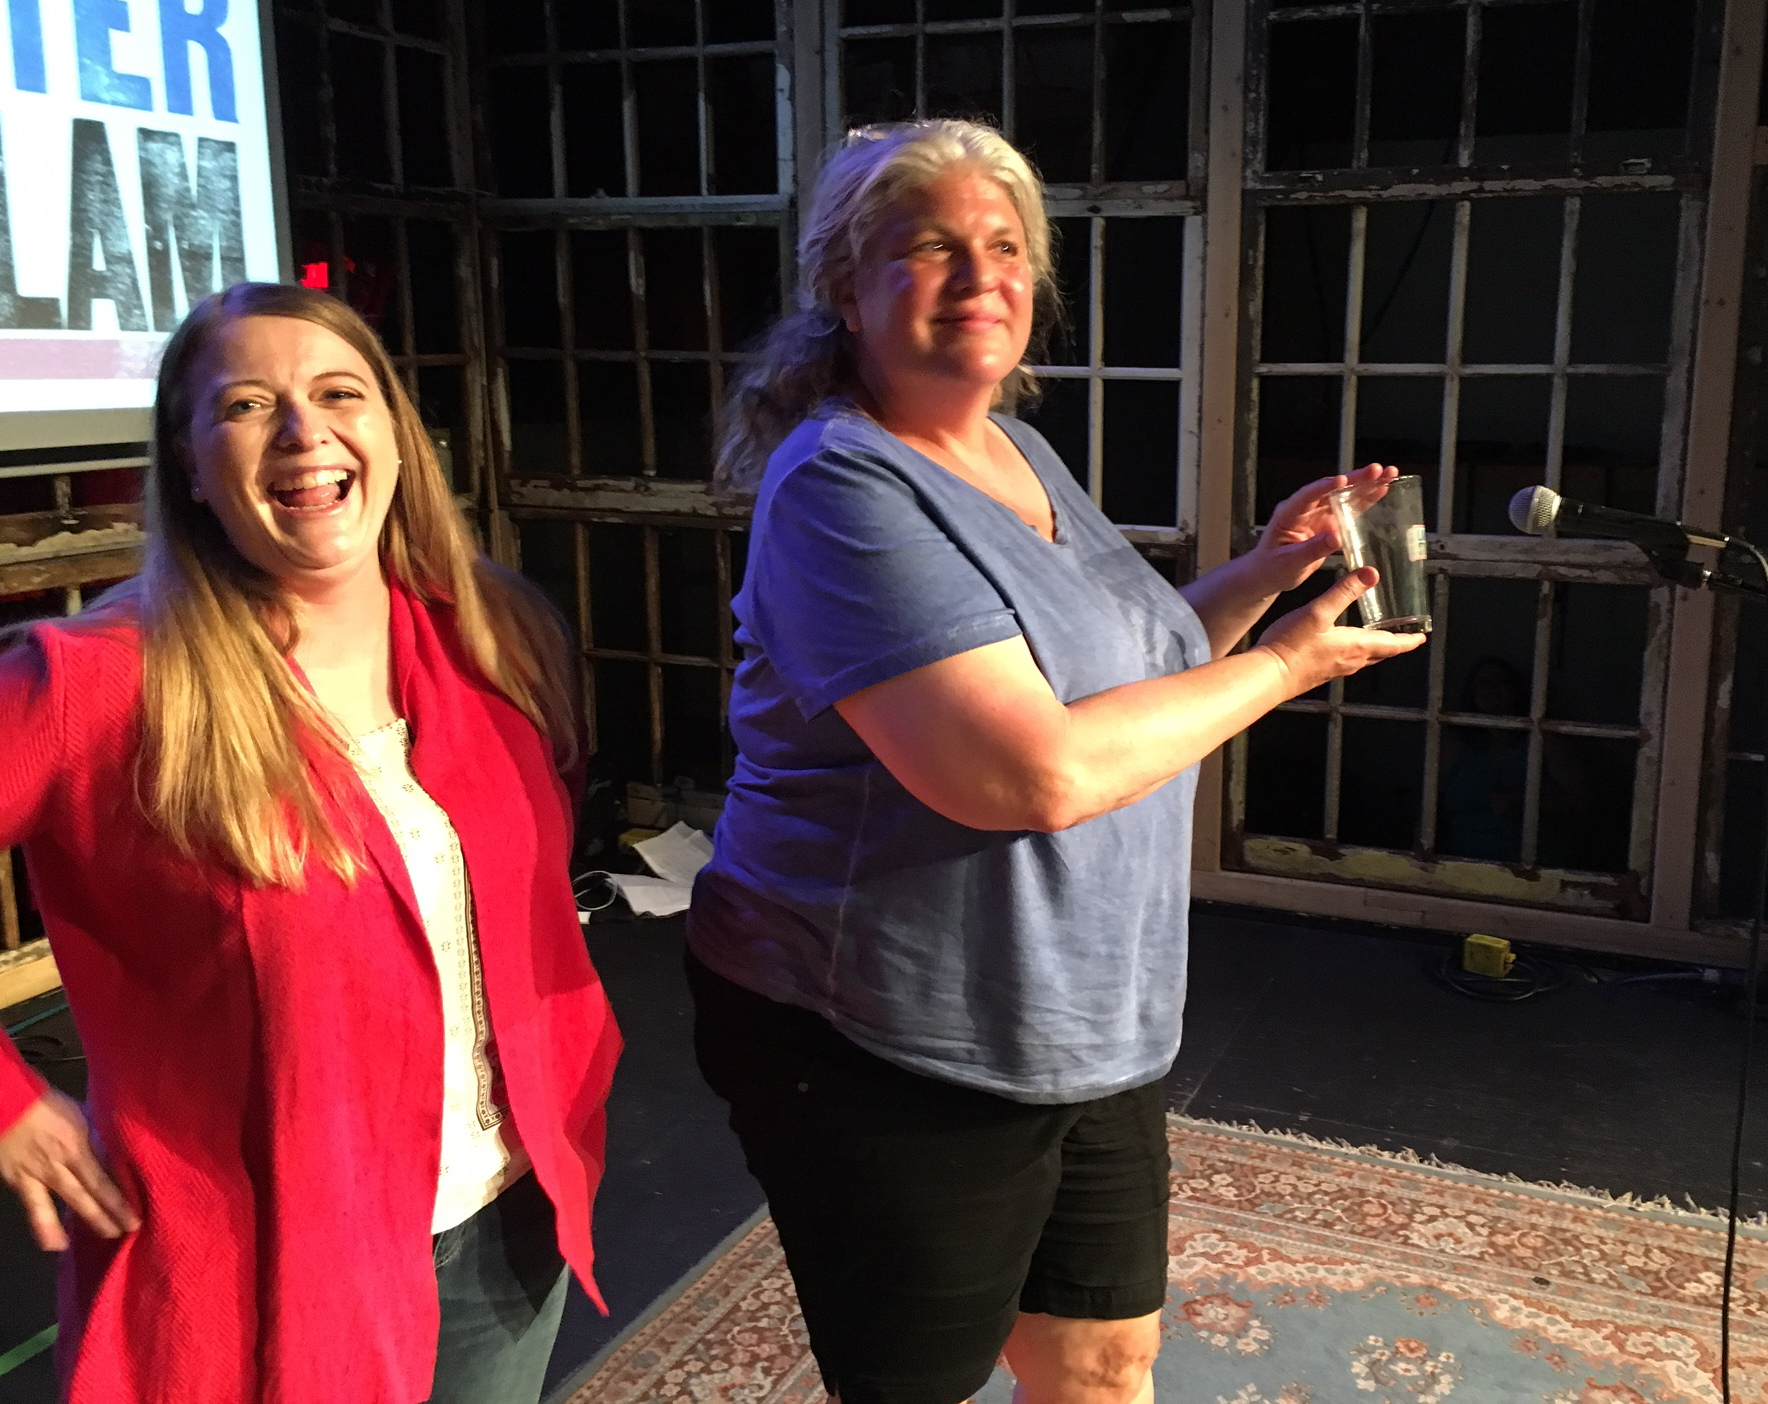 Emcee Donna Talarico looks on as Linda Silberman shows off her prized pint glass.